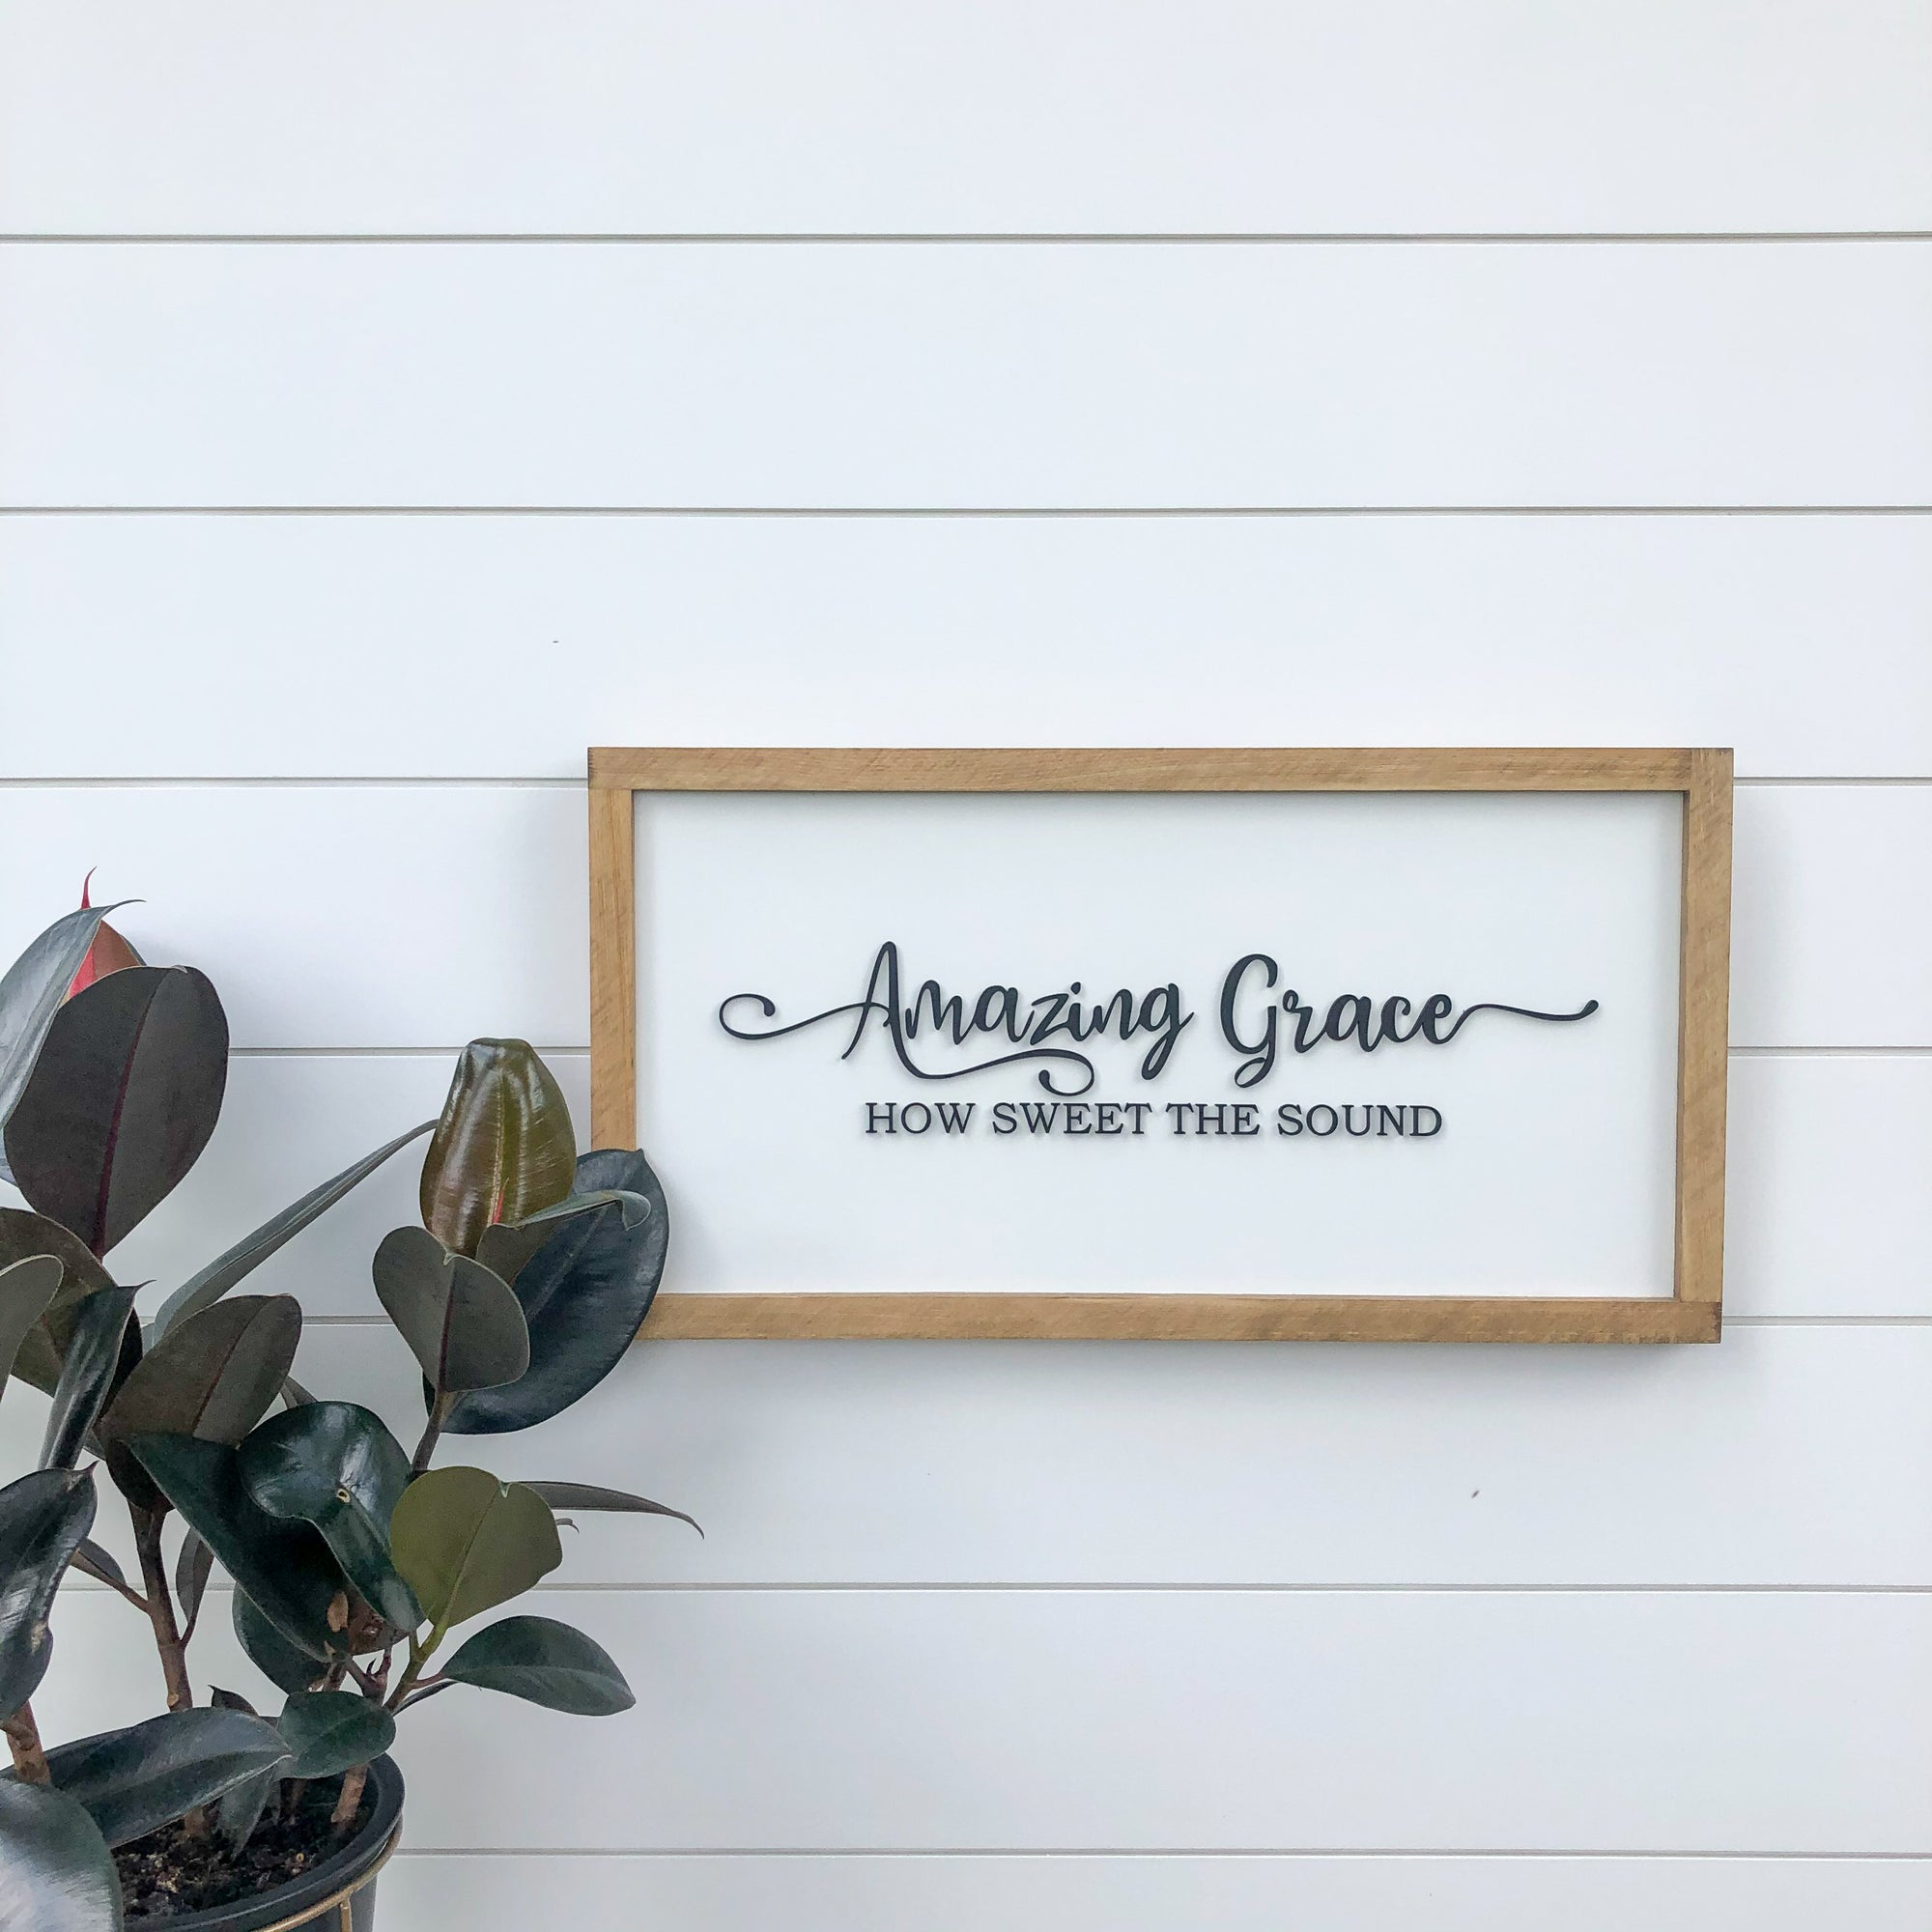 11x21 3D Amazing Grace sign